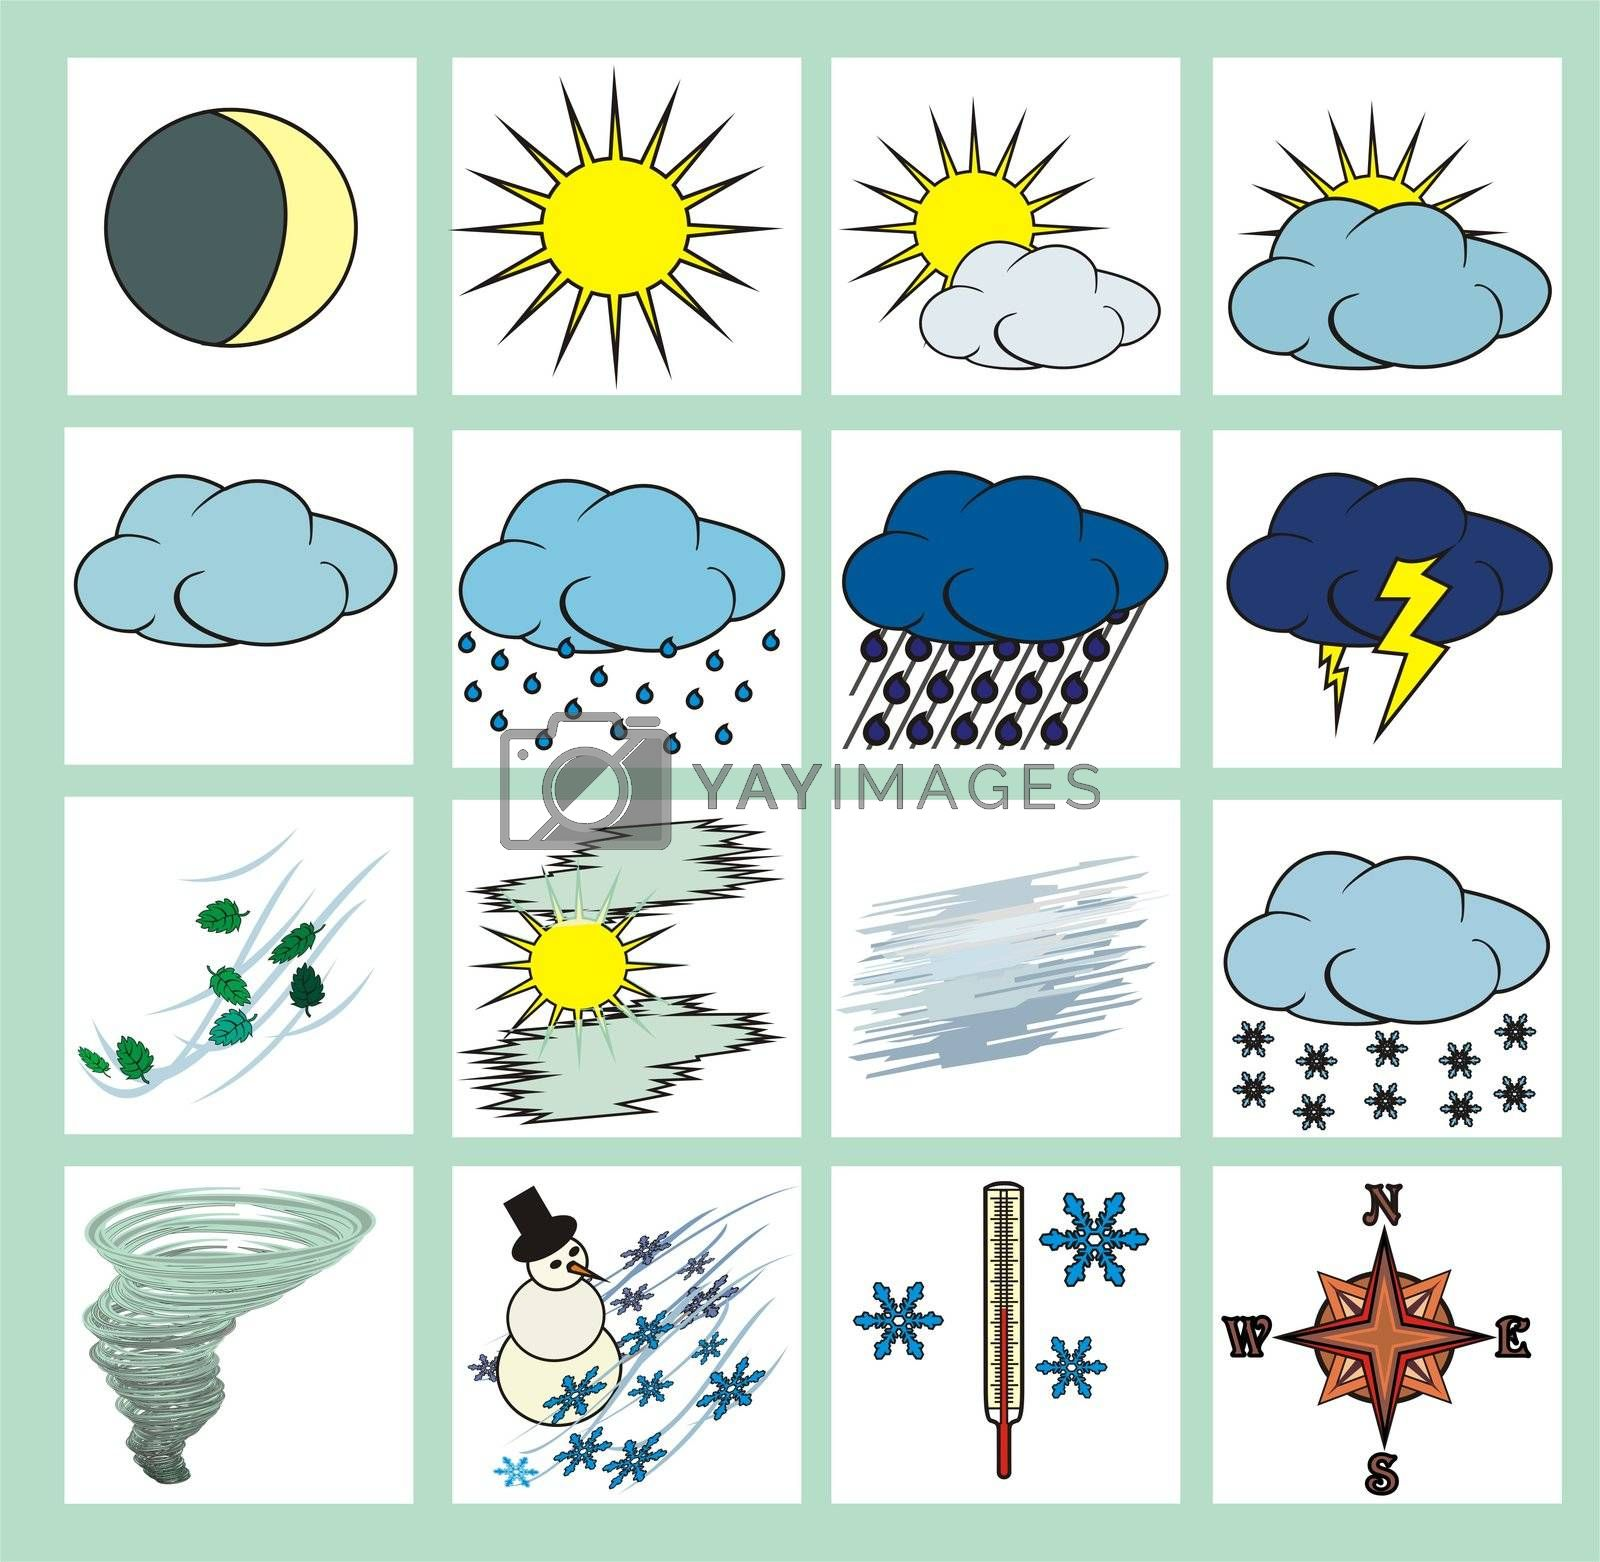 Weather icons or cliparts color with black outlines on white background